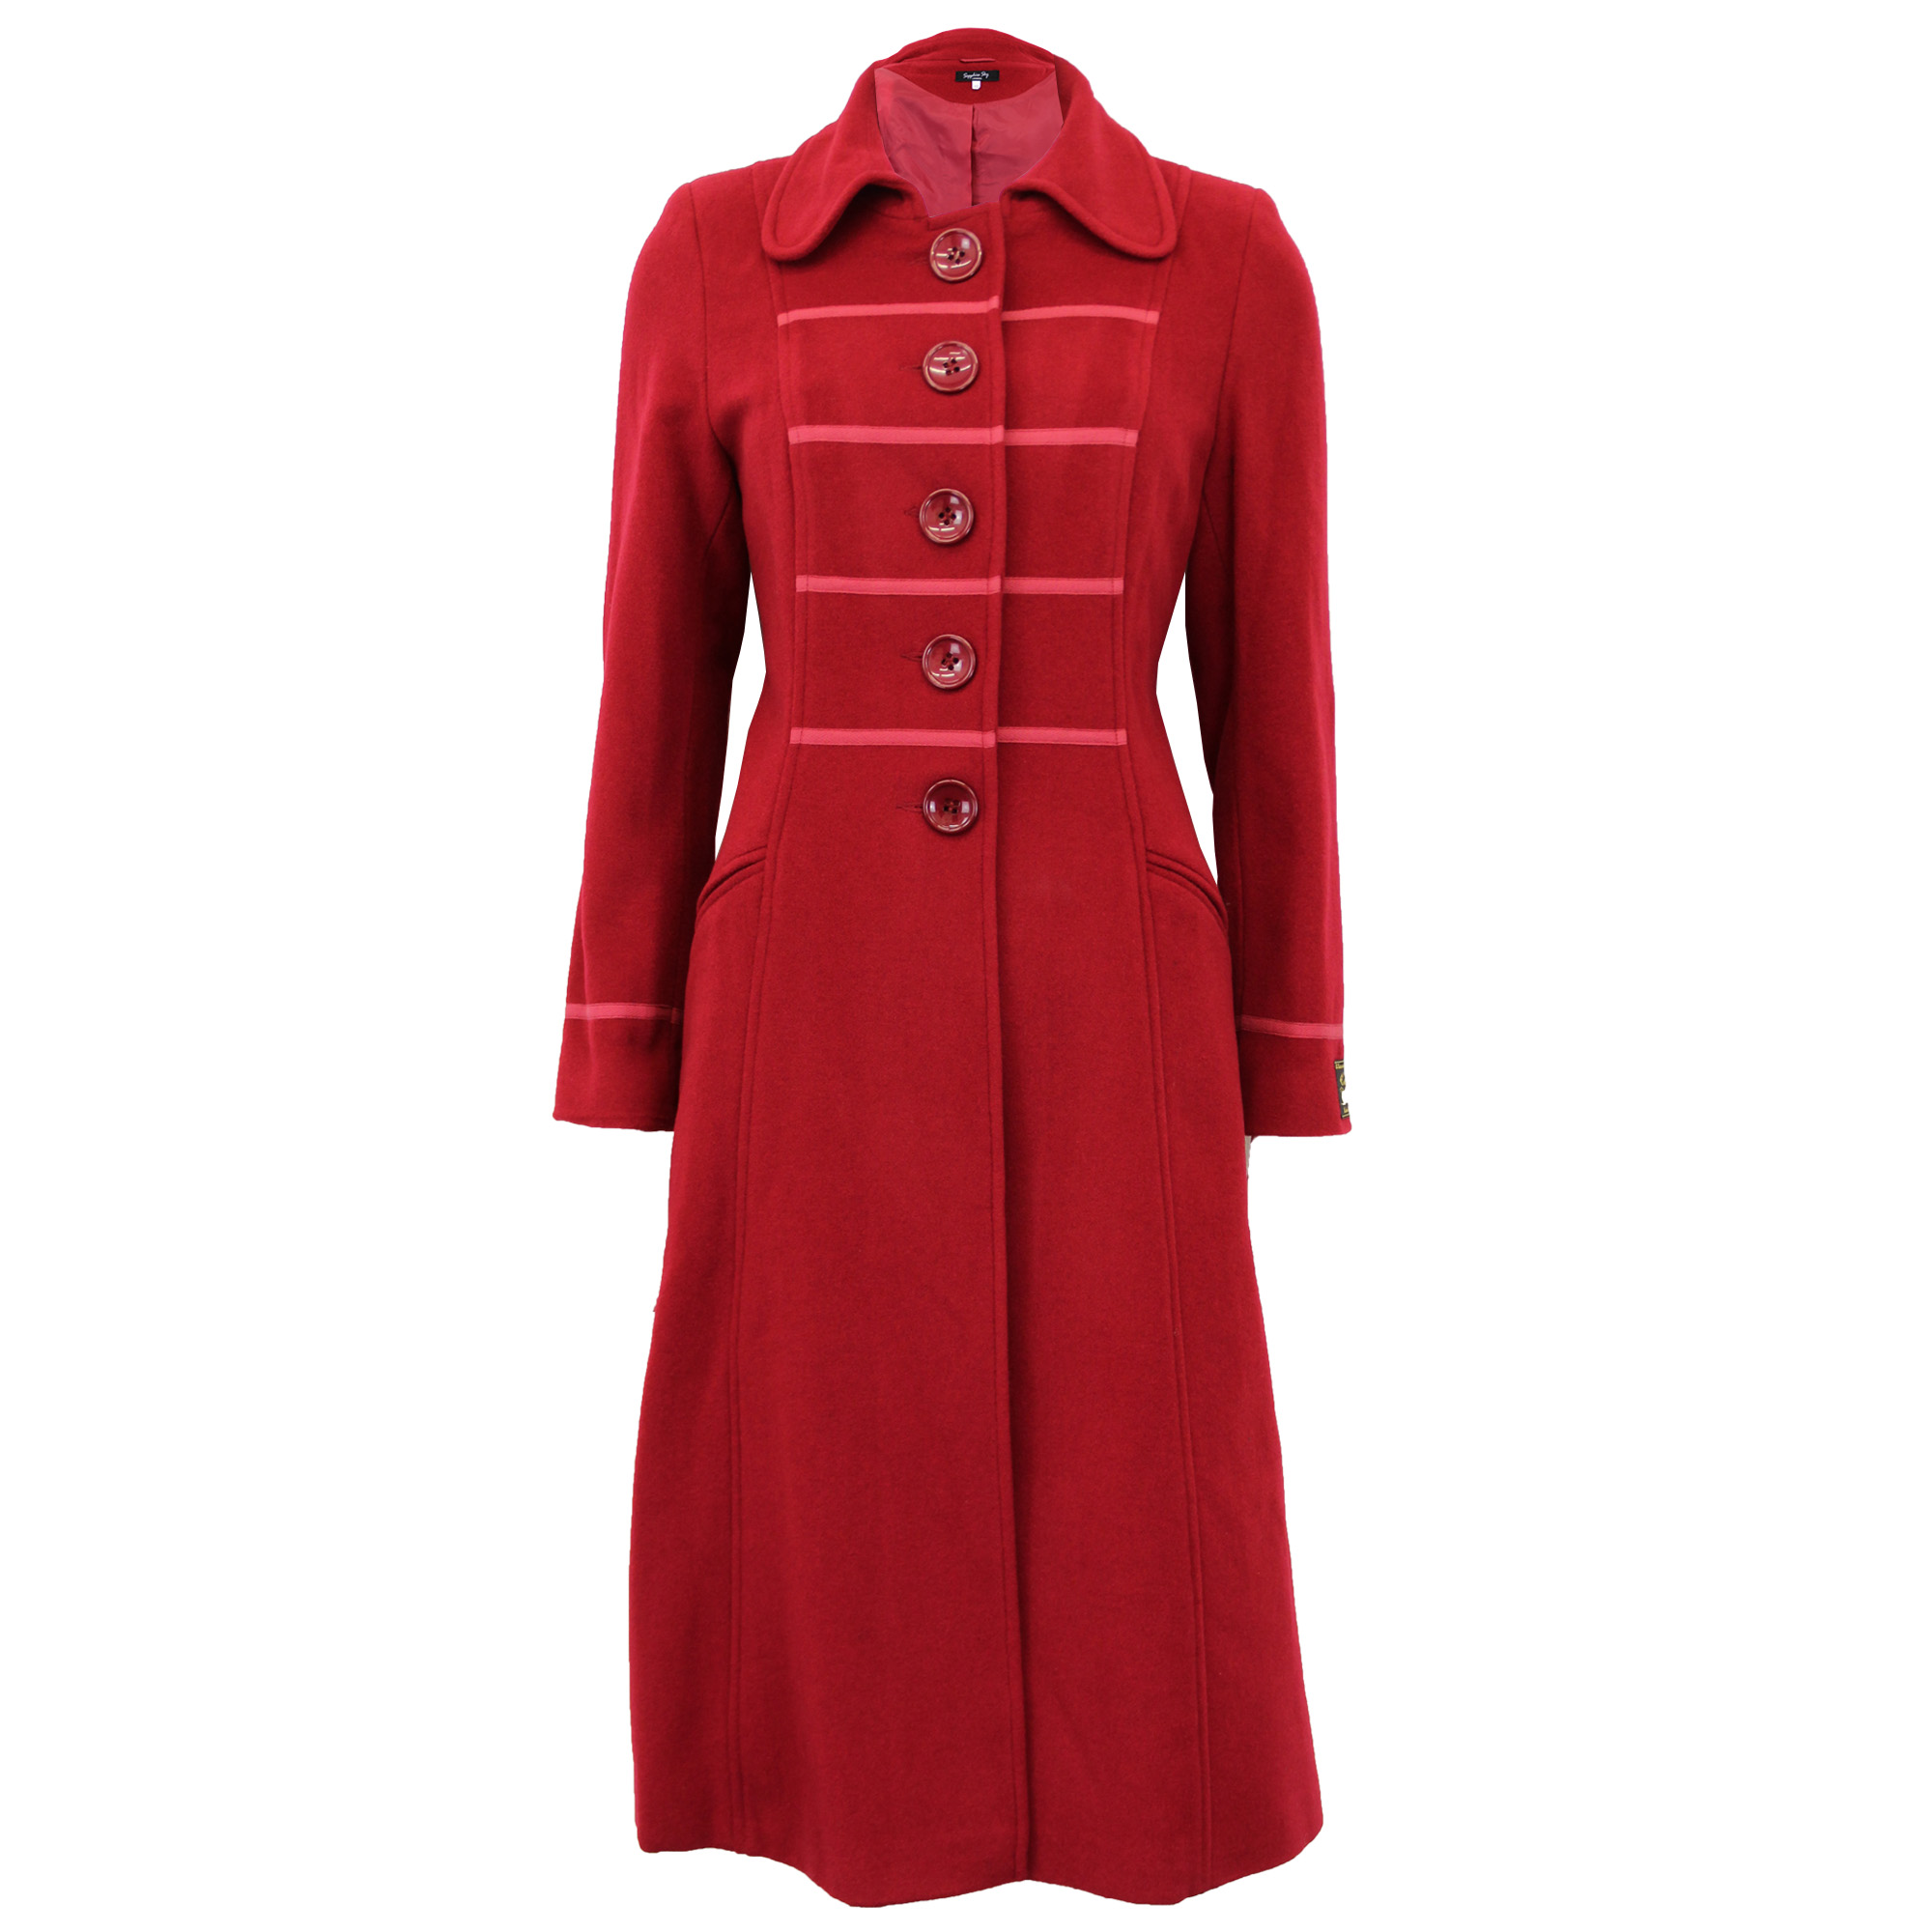 thumbnail 8 - Ladies-Wool-Cashmere-Coat-Womens-Jacket-Outerwear-Trench-Overcoat-Winter-Warm